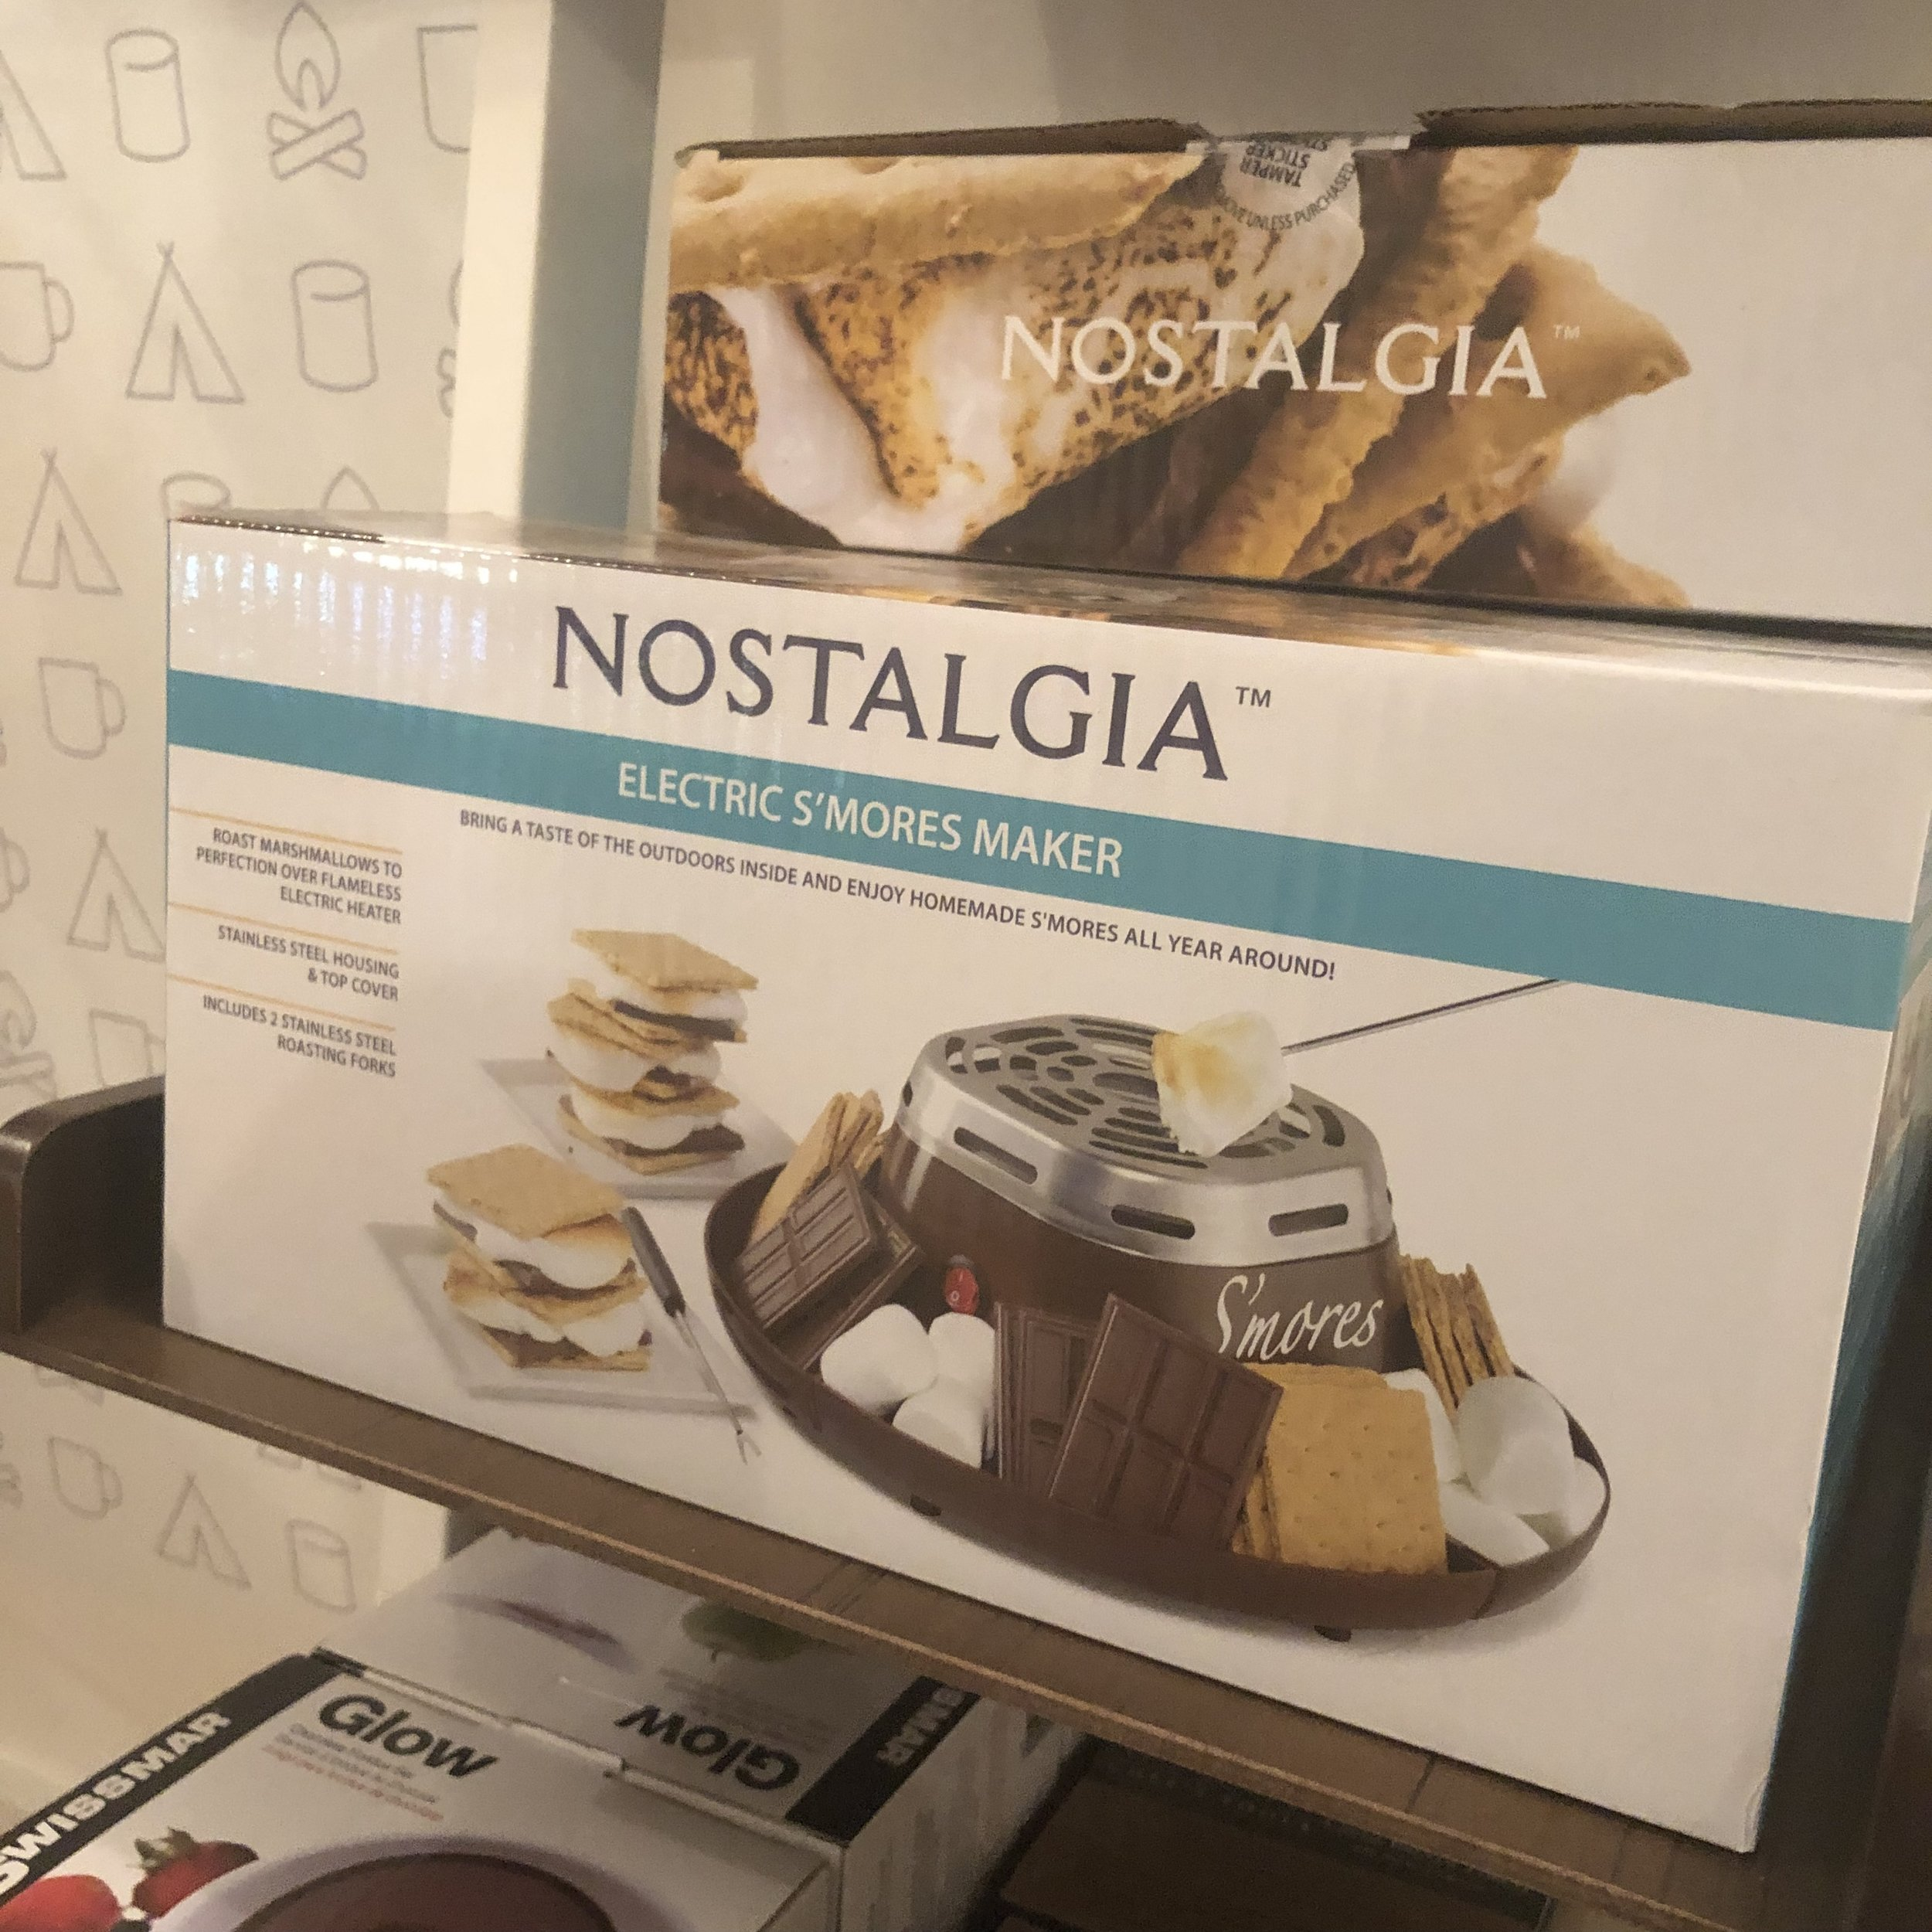 The Nostalgia electric s'mores maker  Photo Credit: Katie Hellmuth Martin